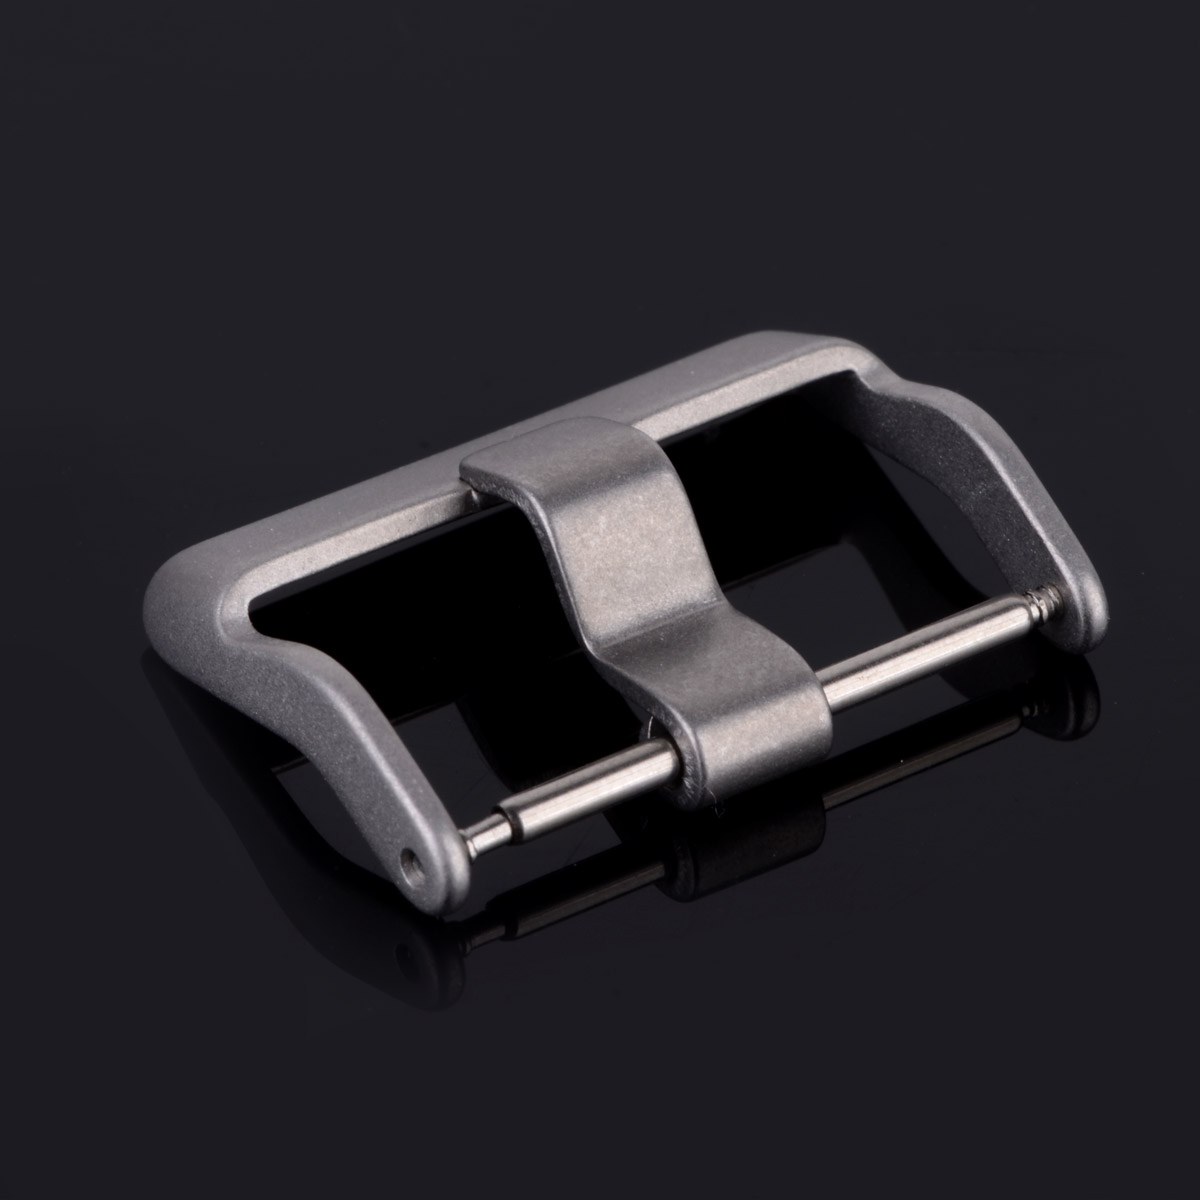 10pcs 18mm/20mm/22mm Stainless Steel Square Clasp Strap For Watch Bands Buckles decoration DIY Accessory watchband Clasp